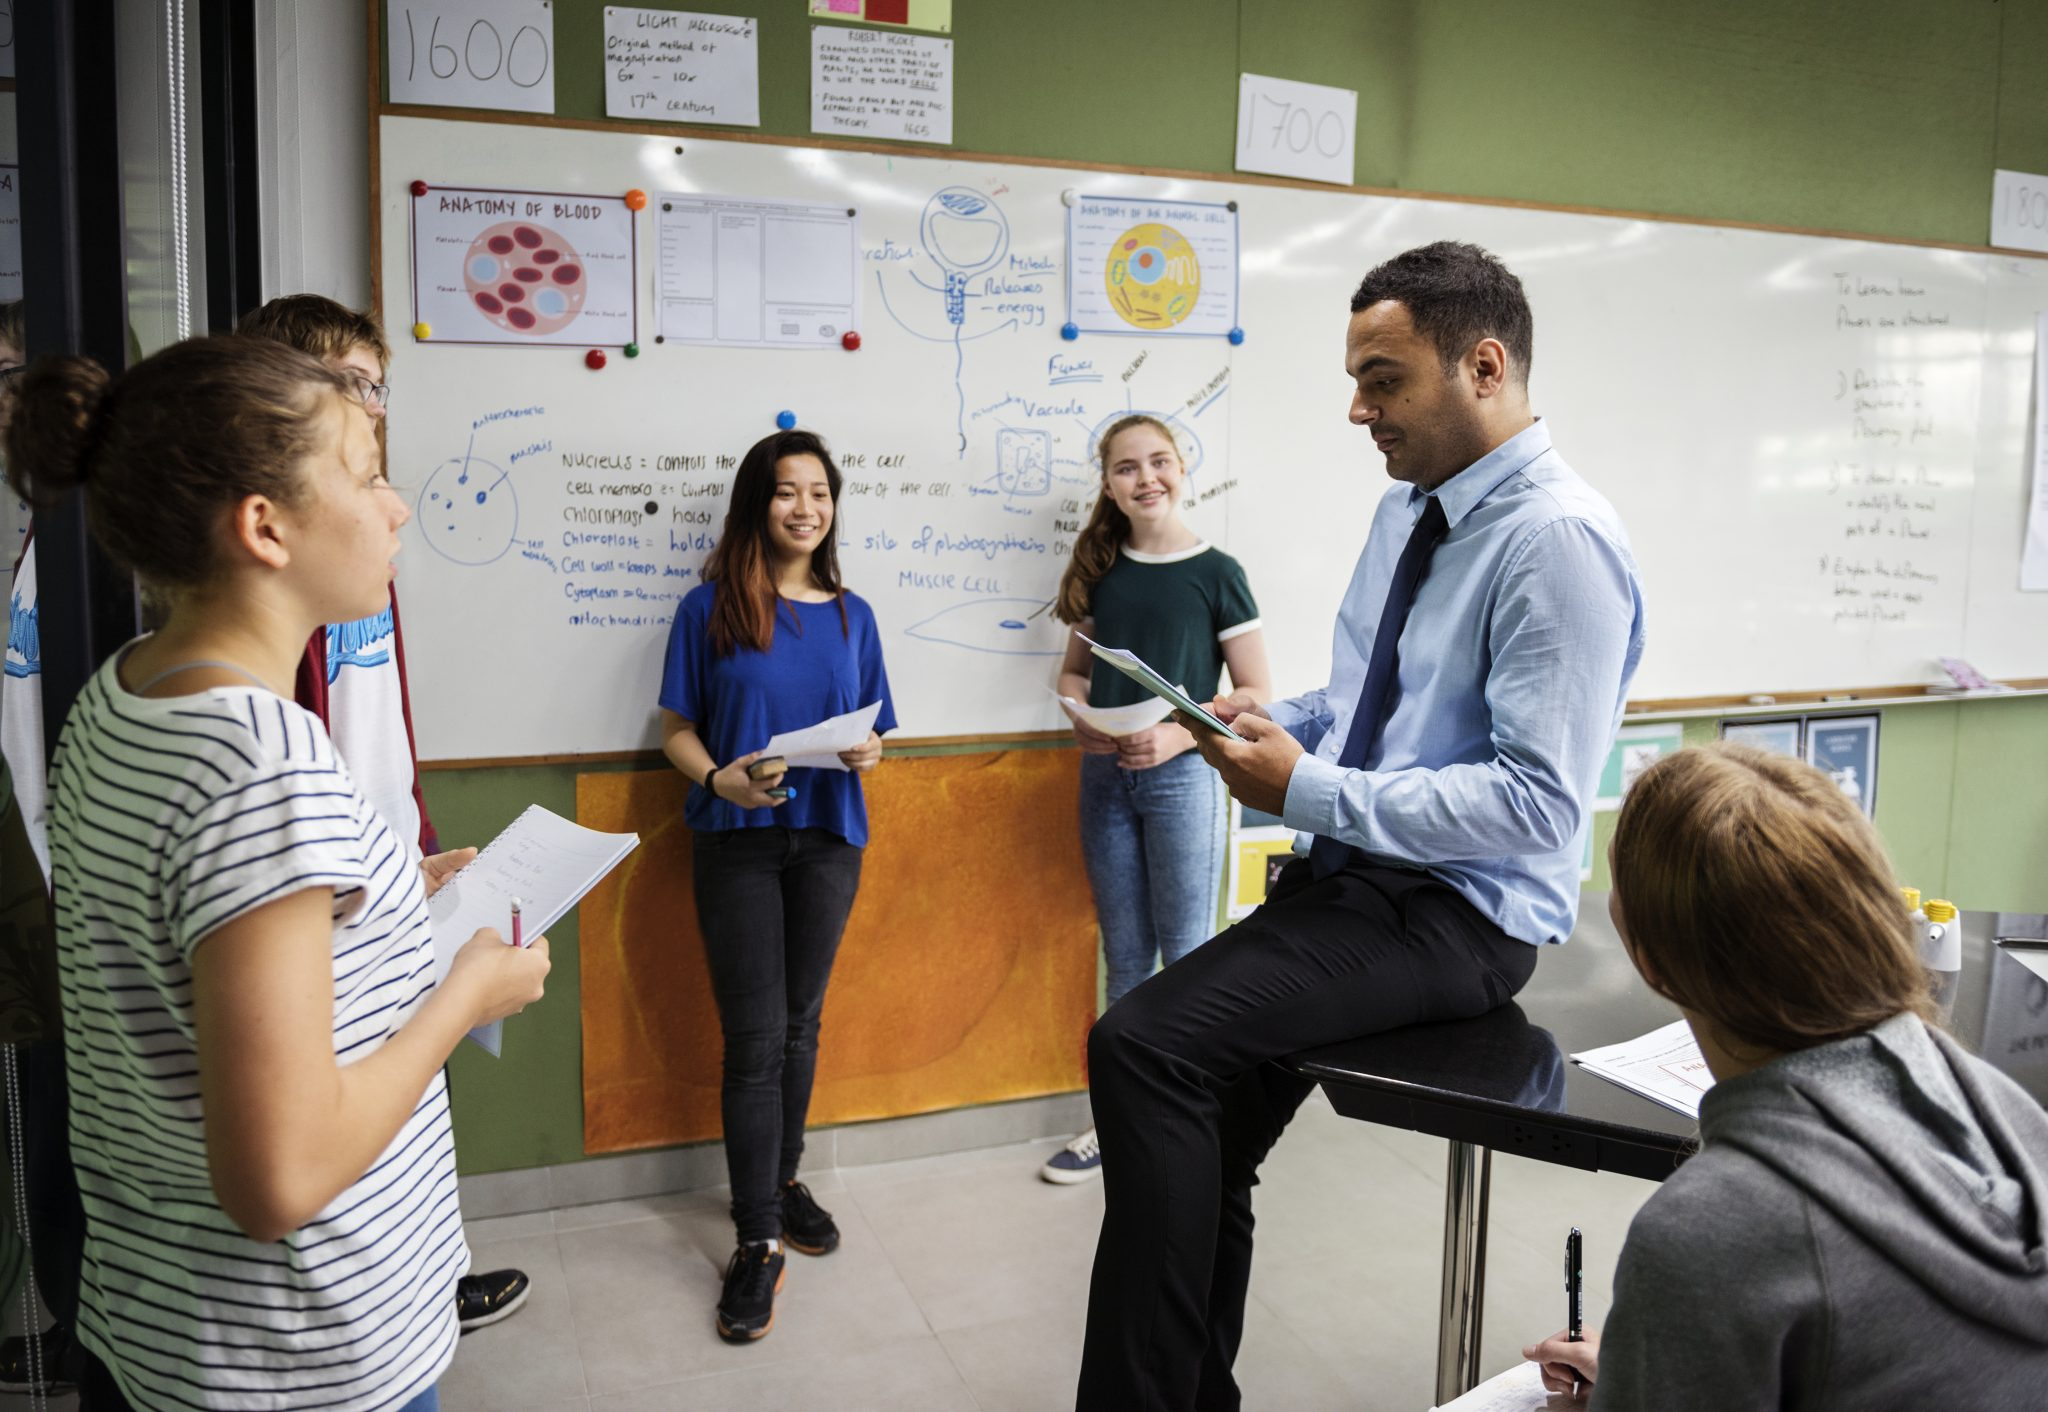 Positive Student-Teacher Relationships: Strategies to Transform a Culture through Critical Relationships